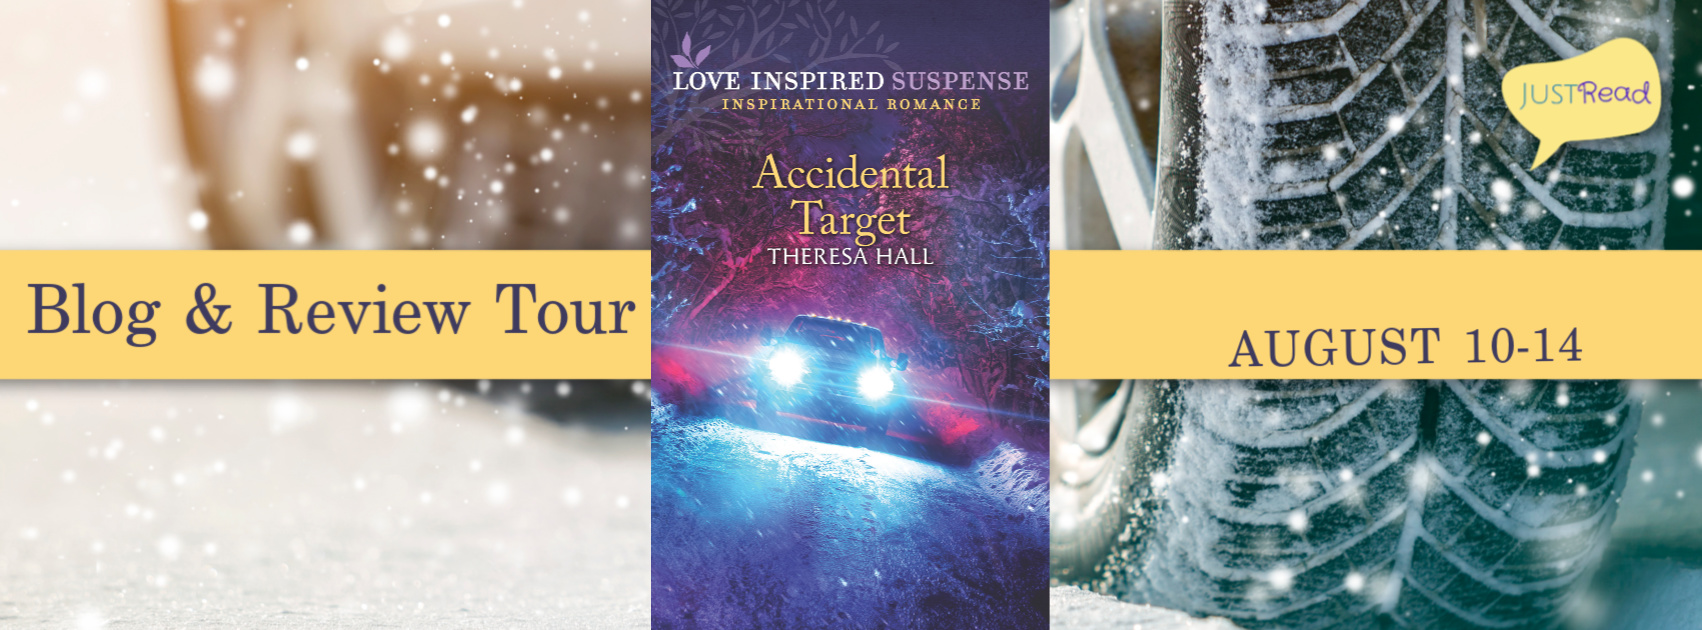 Welcome to the Accidental Target Blog Tour & Giveaway!